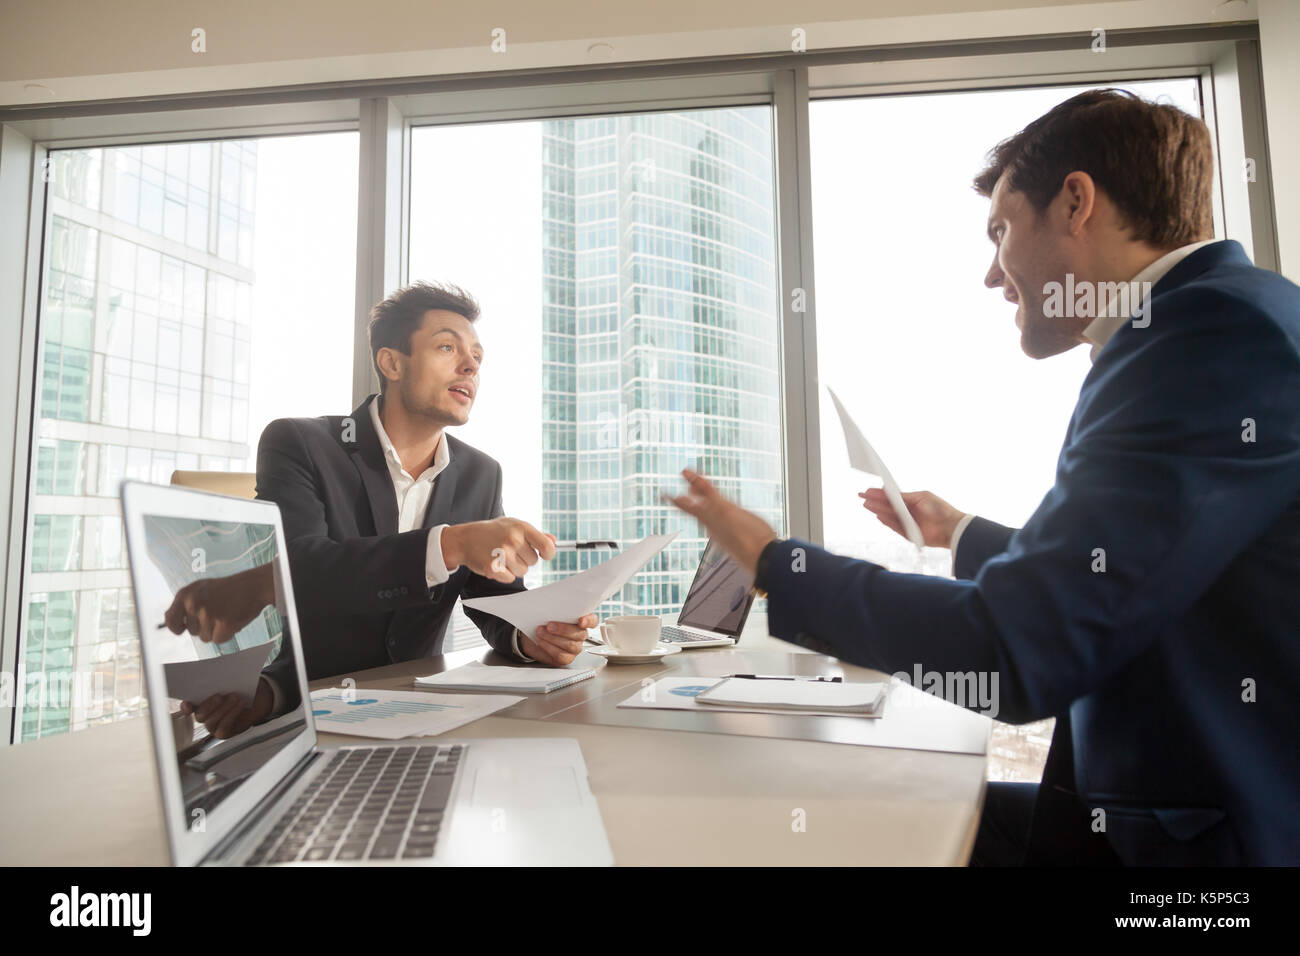 Angry businessman arguing with partner on meeting - Stock Image